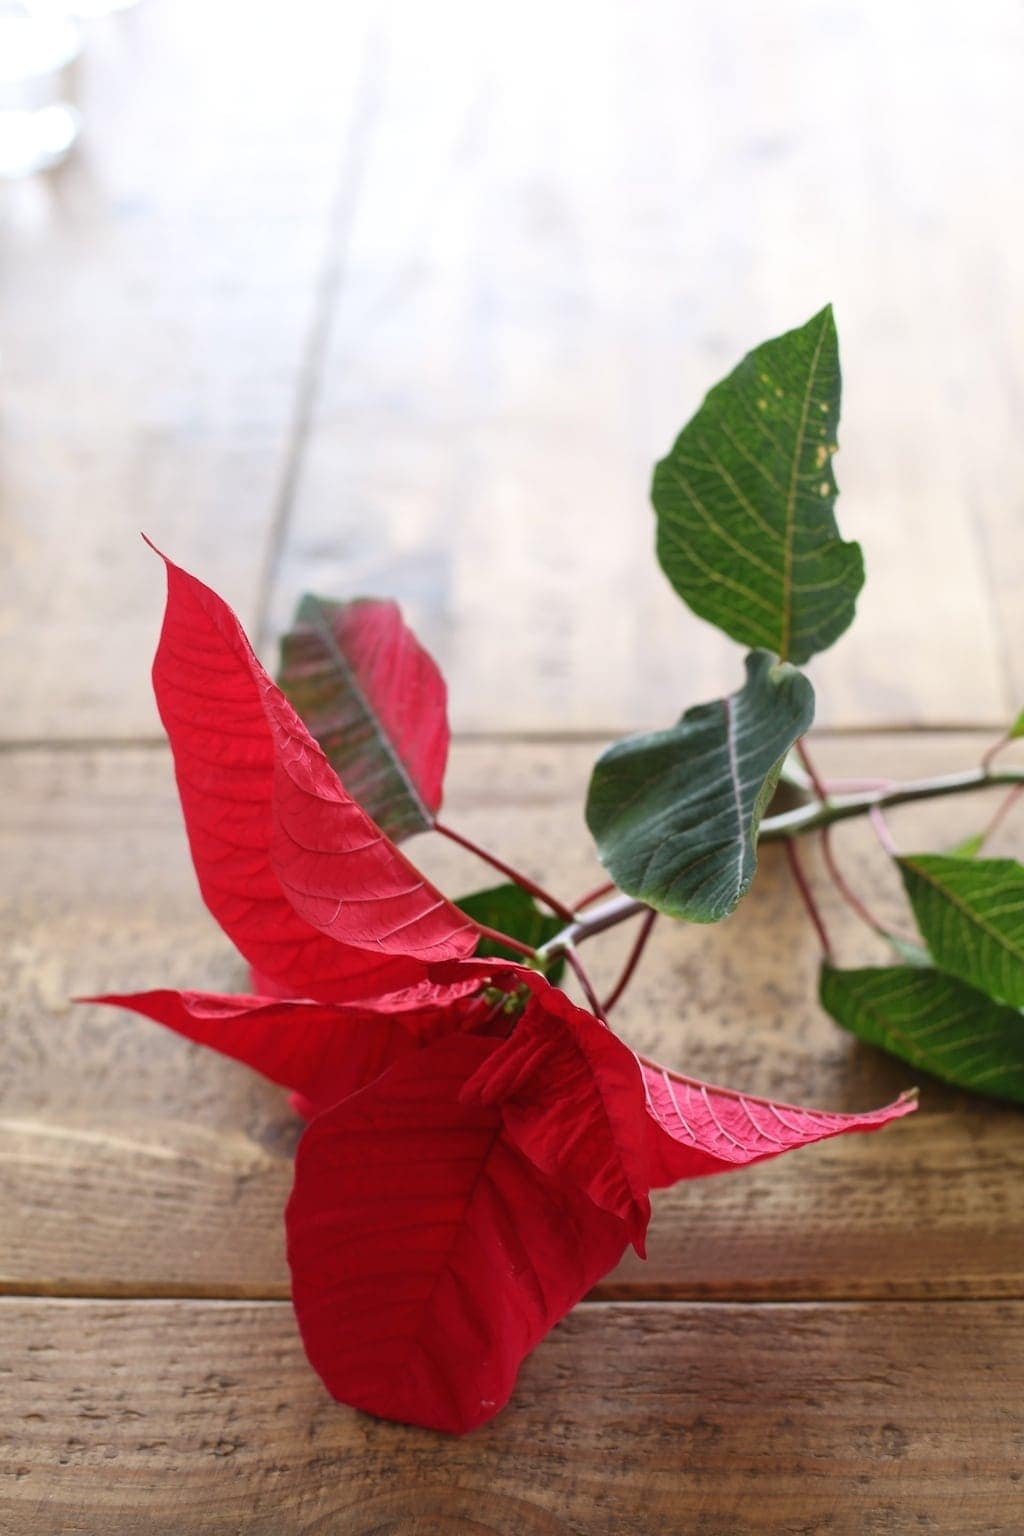 Step by step tutorial to create a gorgeous holiday centerpiece with just 1 poinsettia